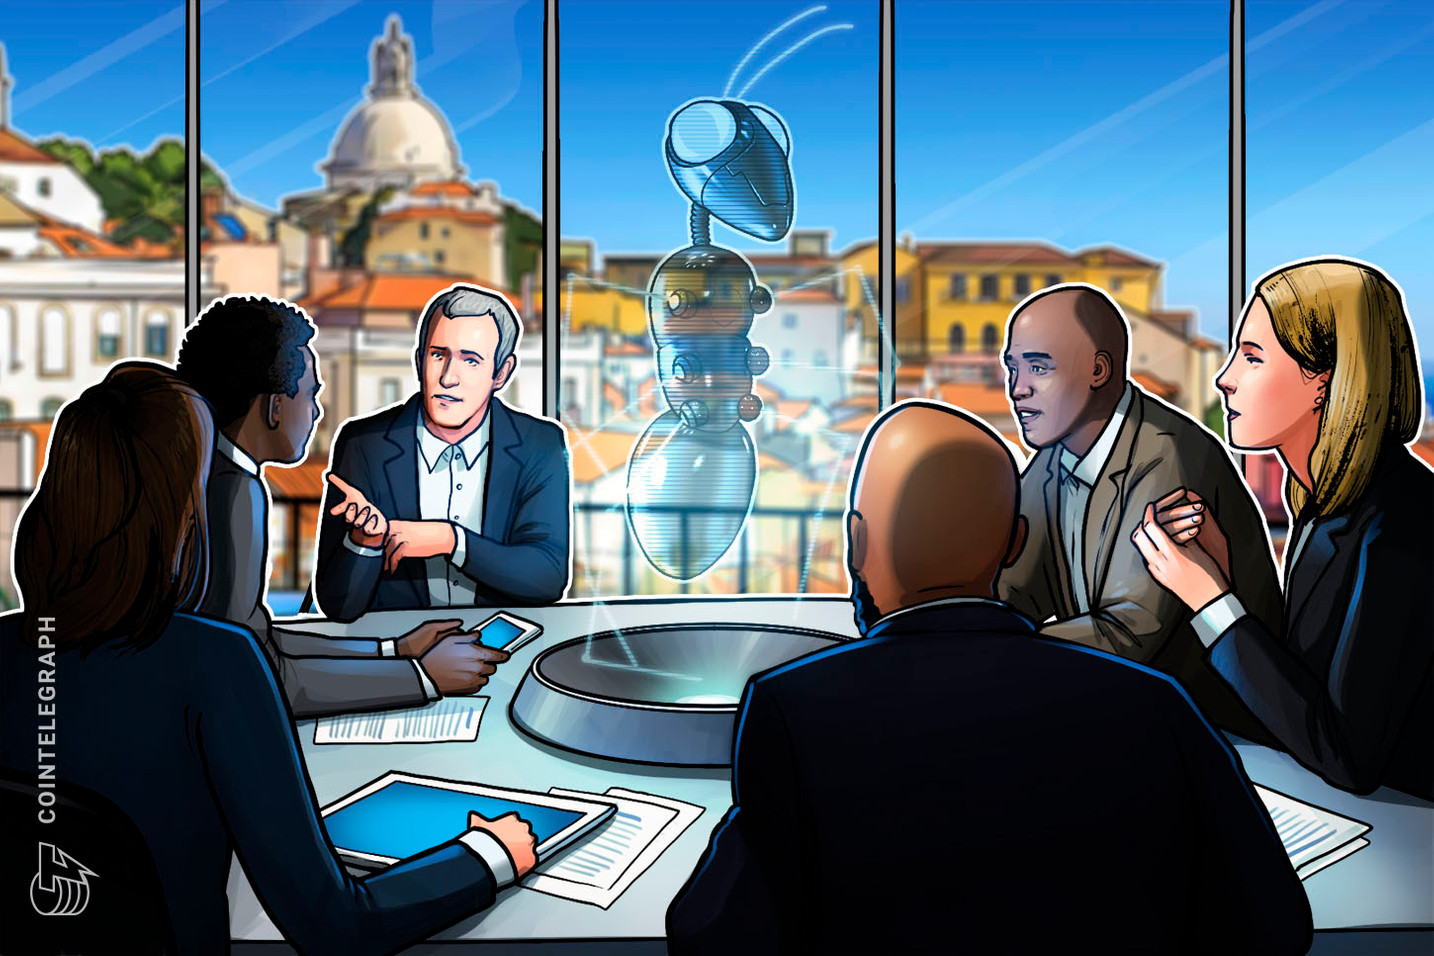 Portugal Chases Crypto-Friendly Status With New 'Free Zones' for Tech